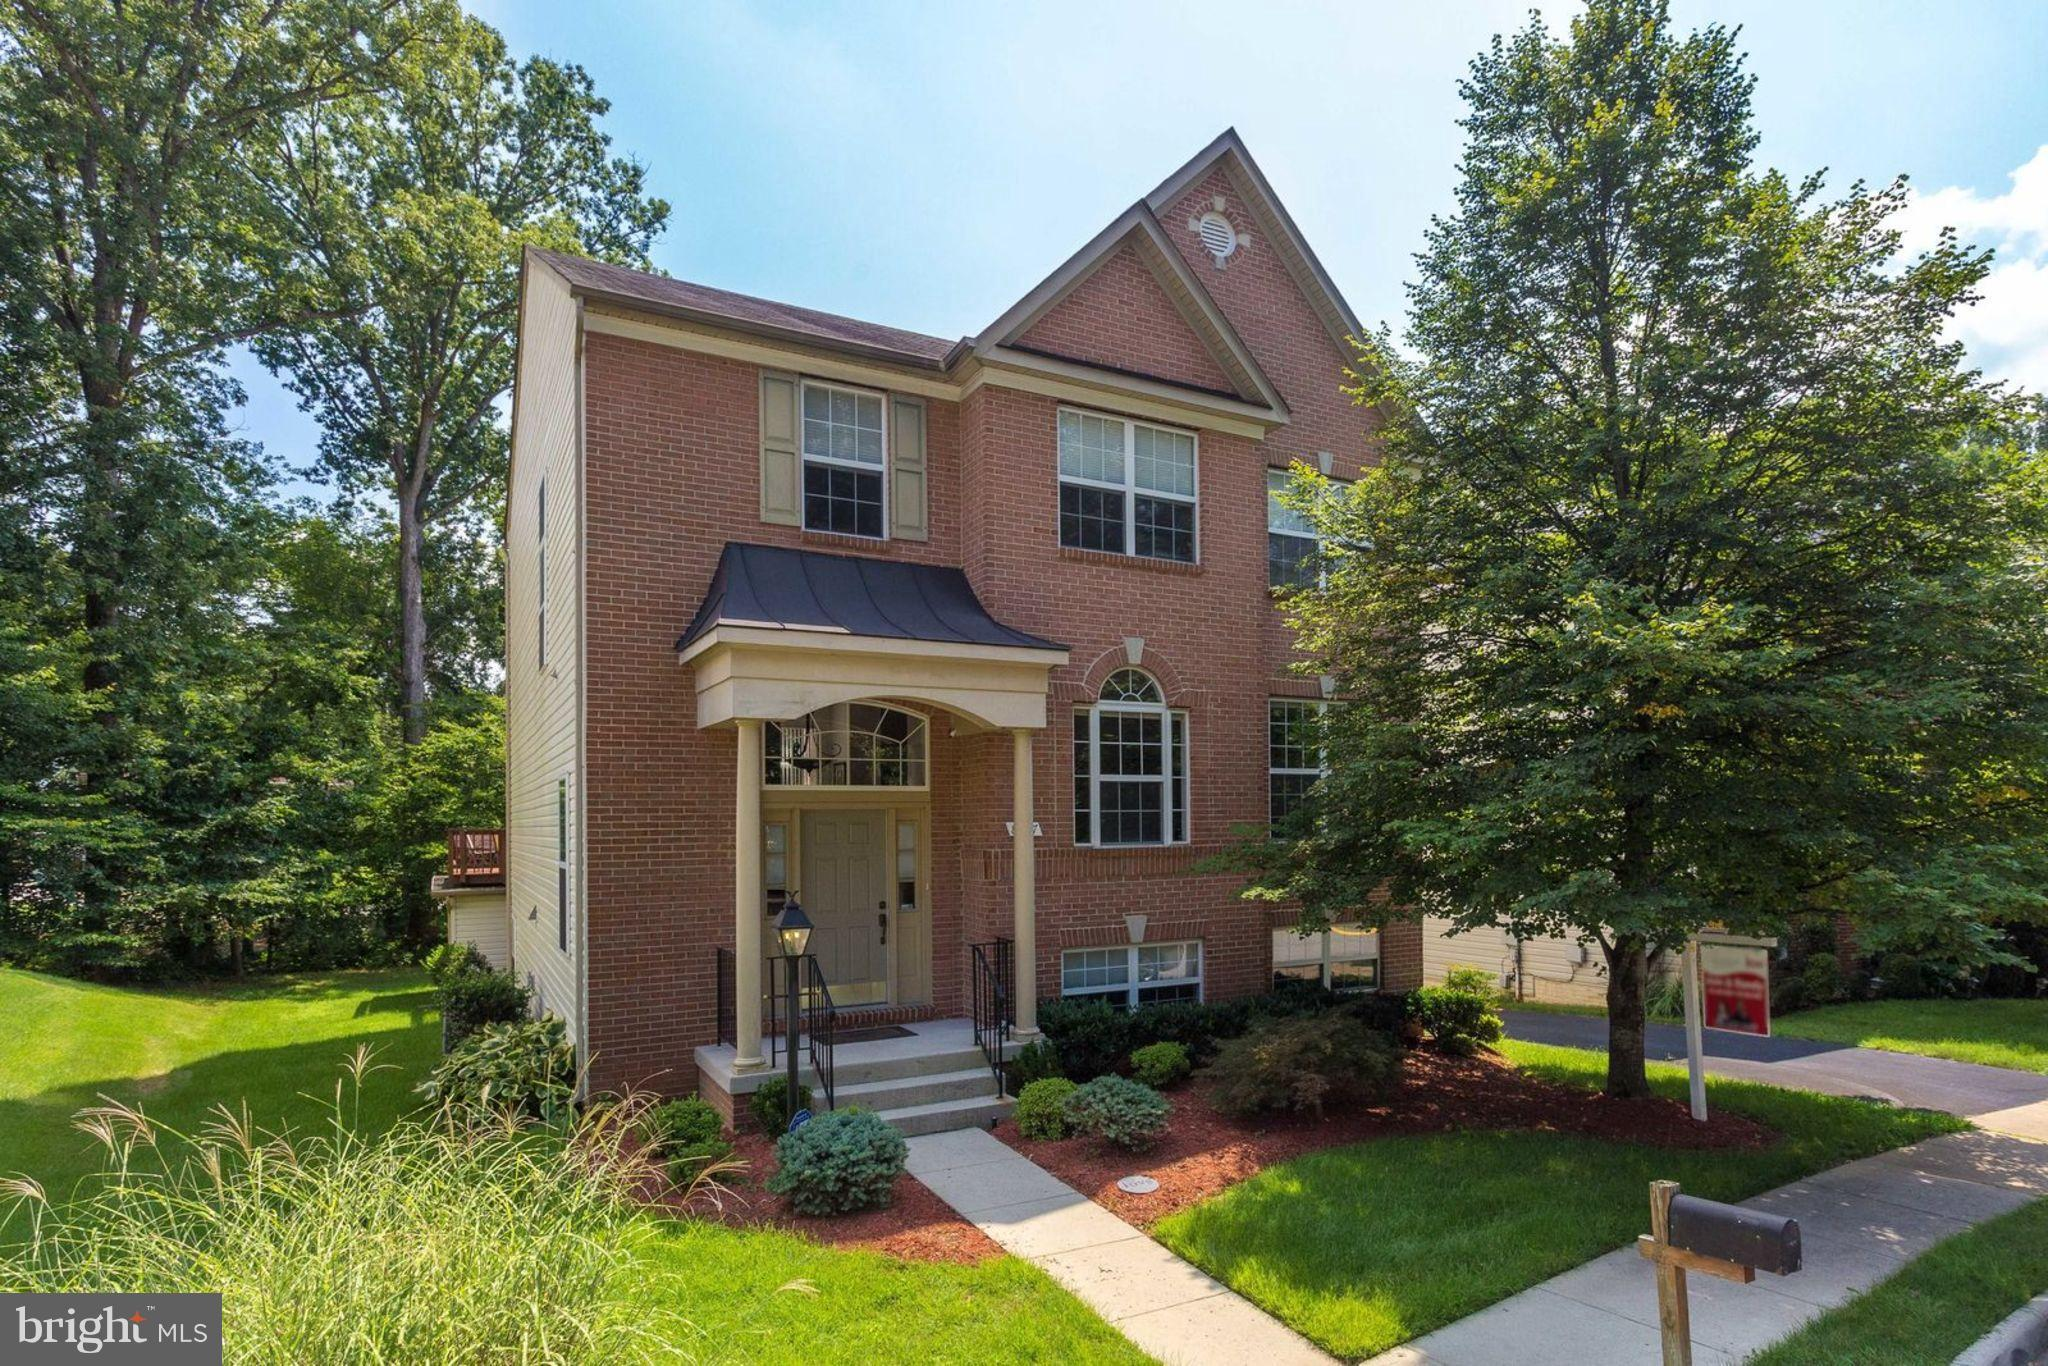 8907 DAY LILLY COURT, FAIRFAX, VA 22031